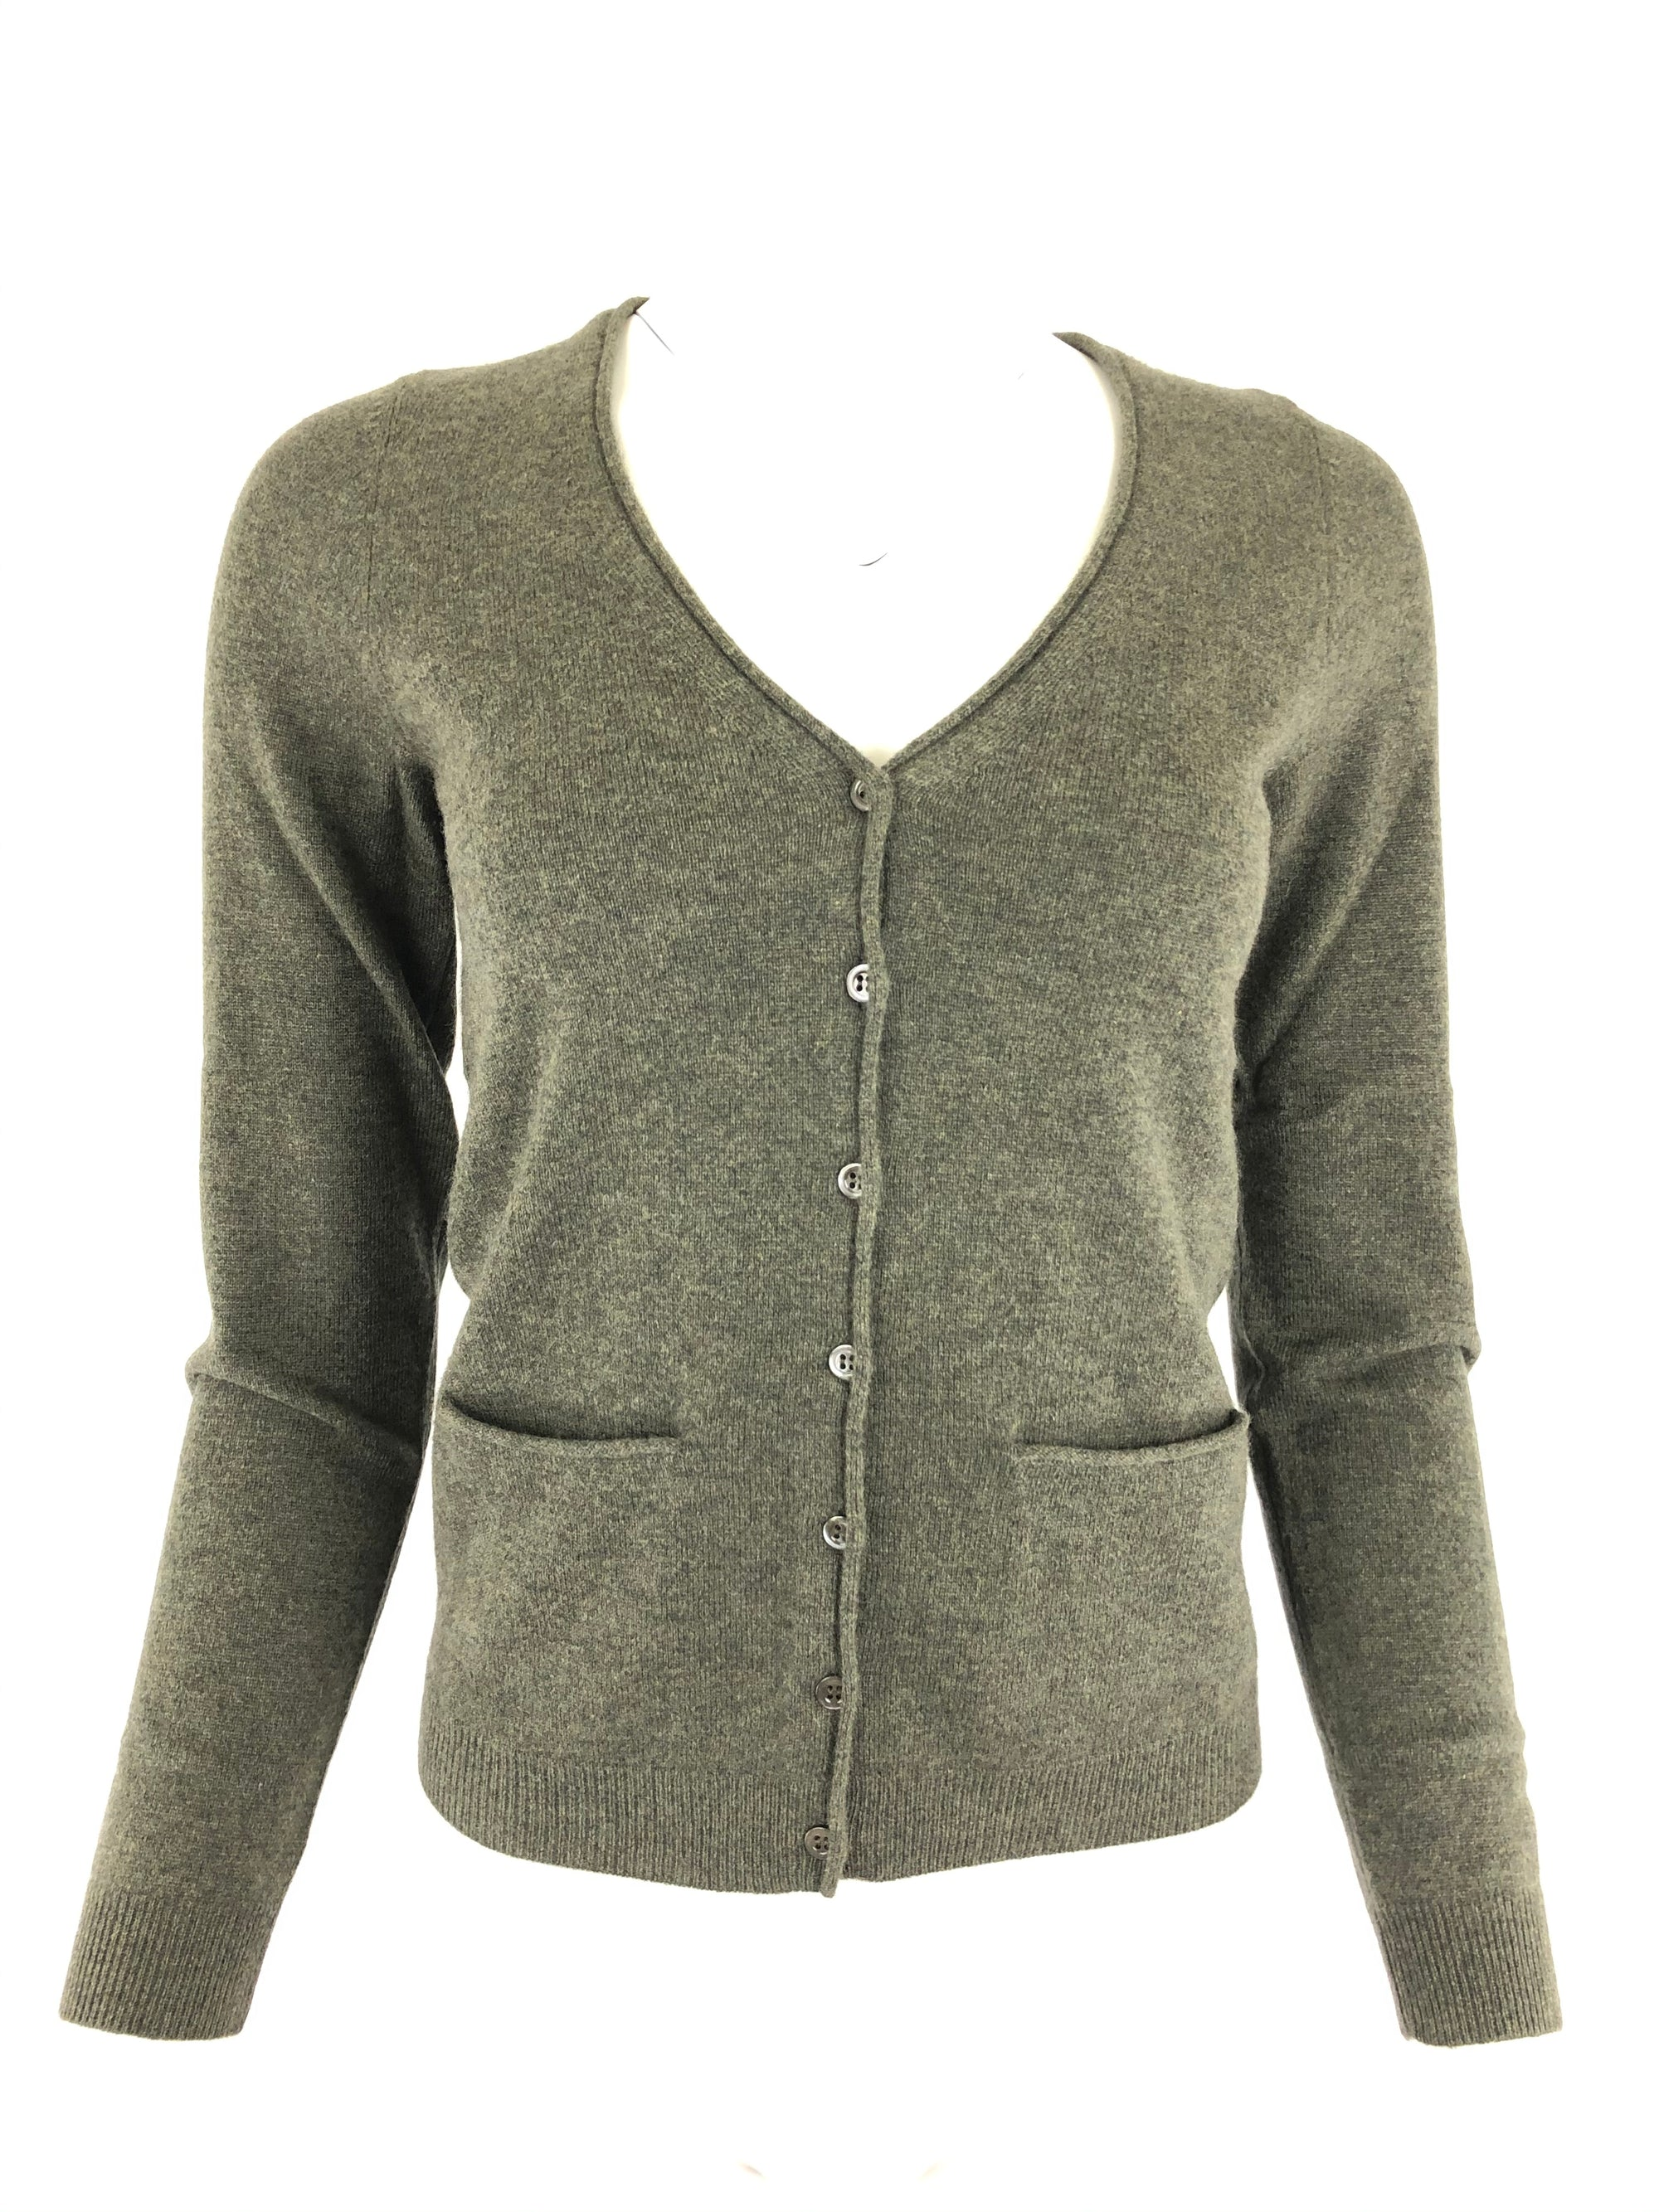 REPEAT WOMEN'S CASHMERE CARDIGAN - 2 COLOR OPTIONS